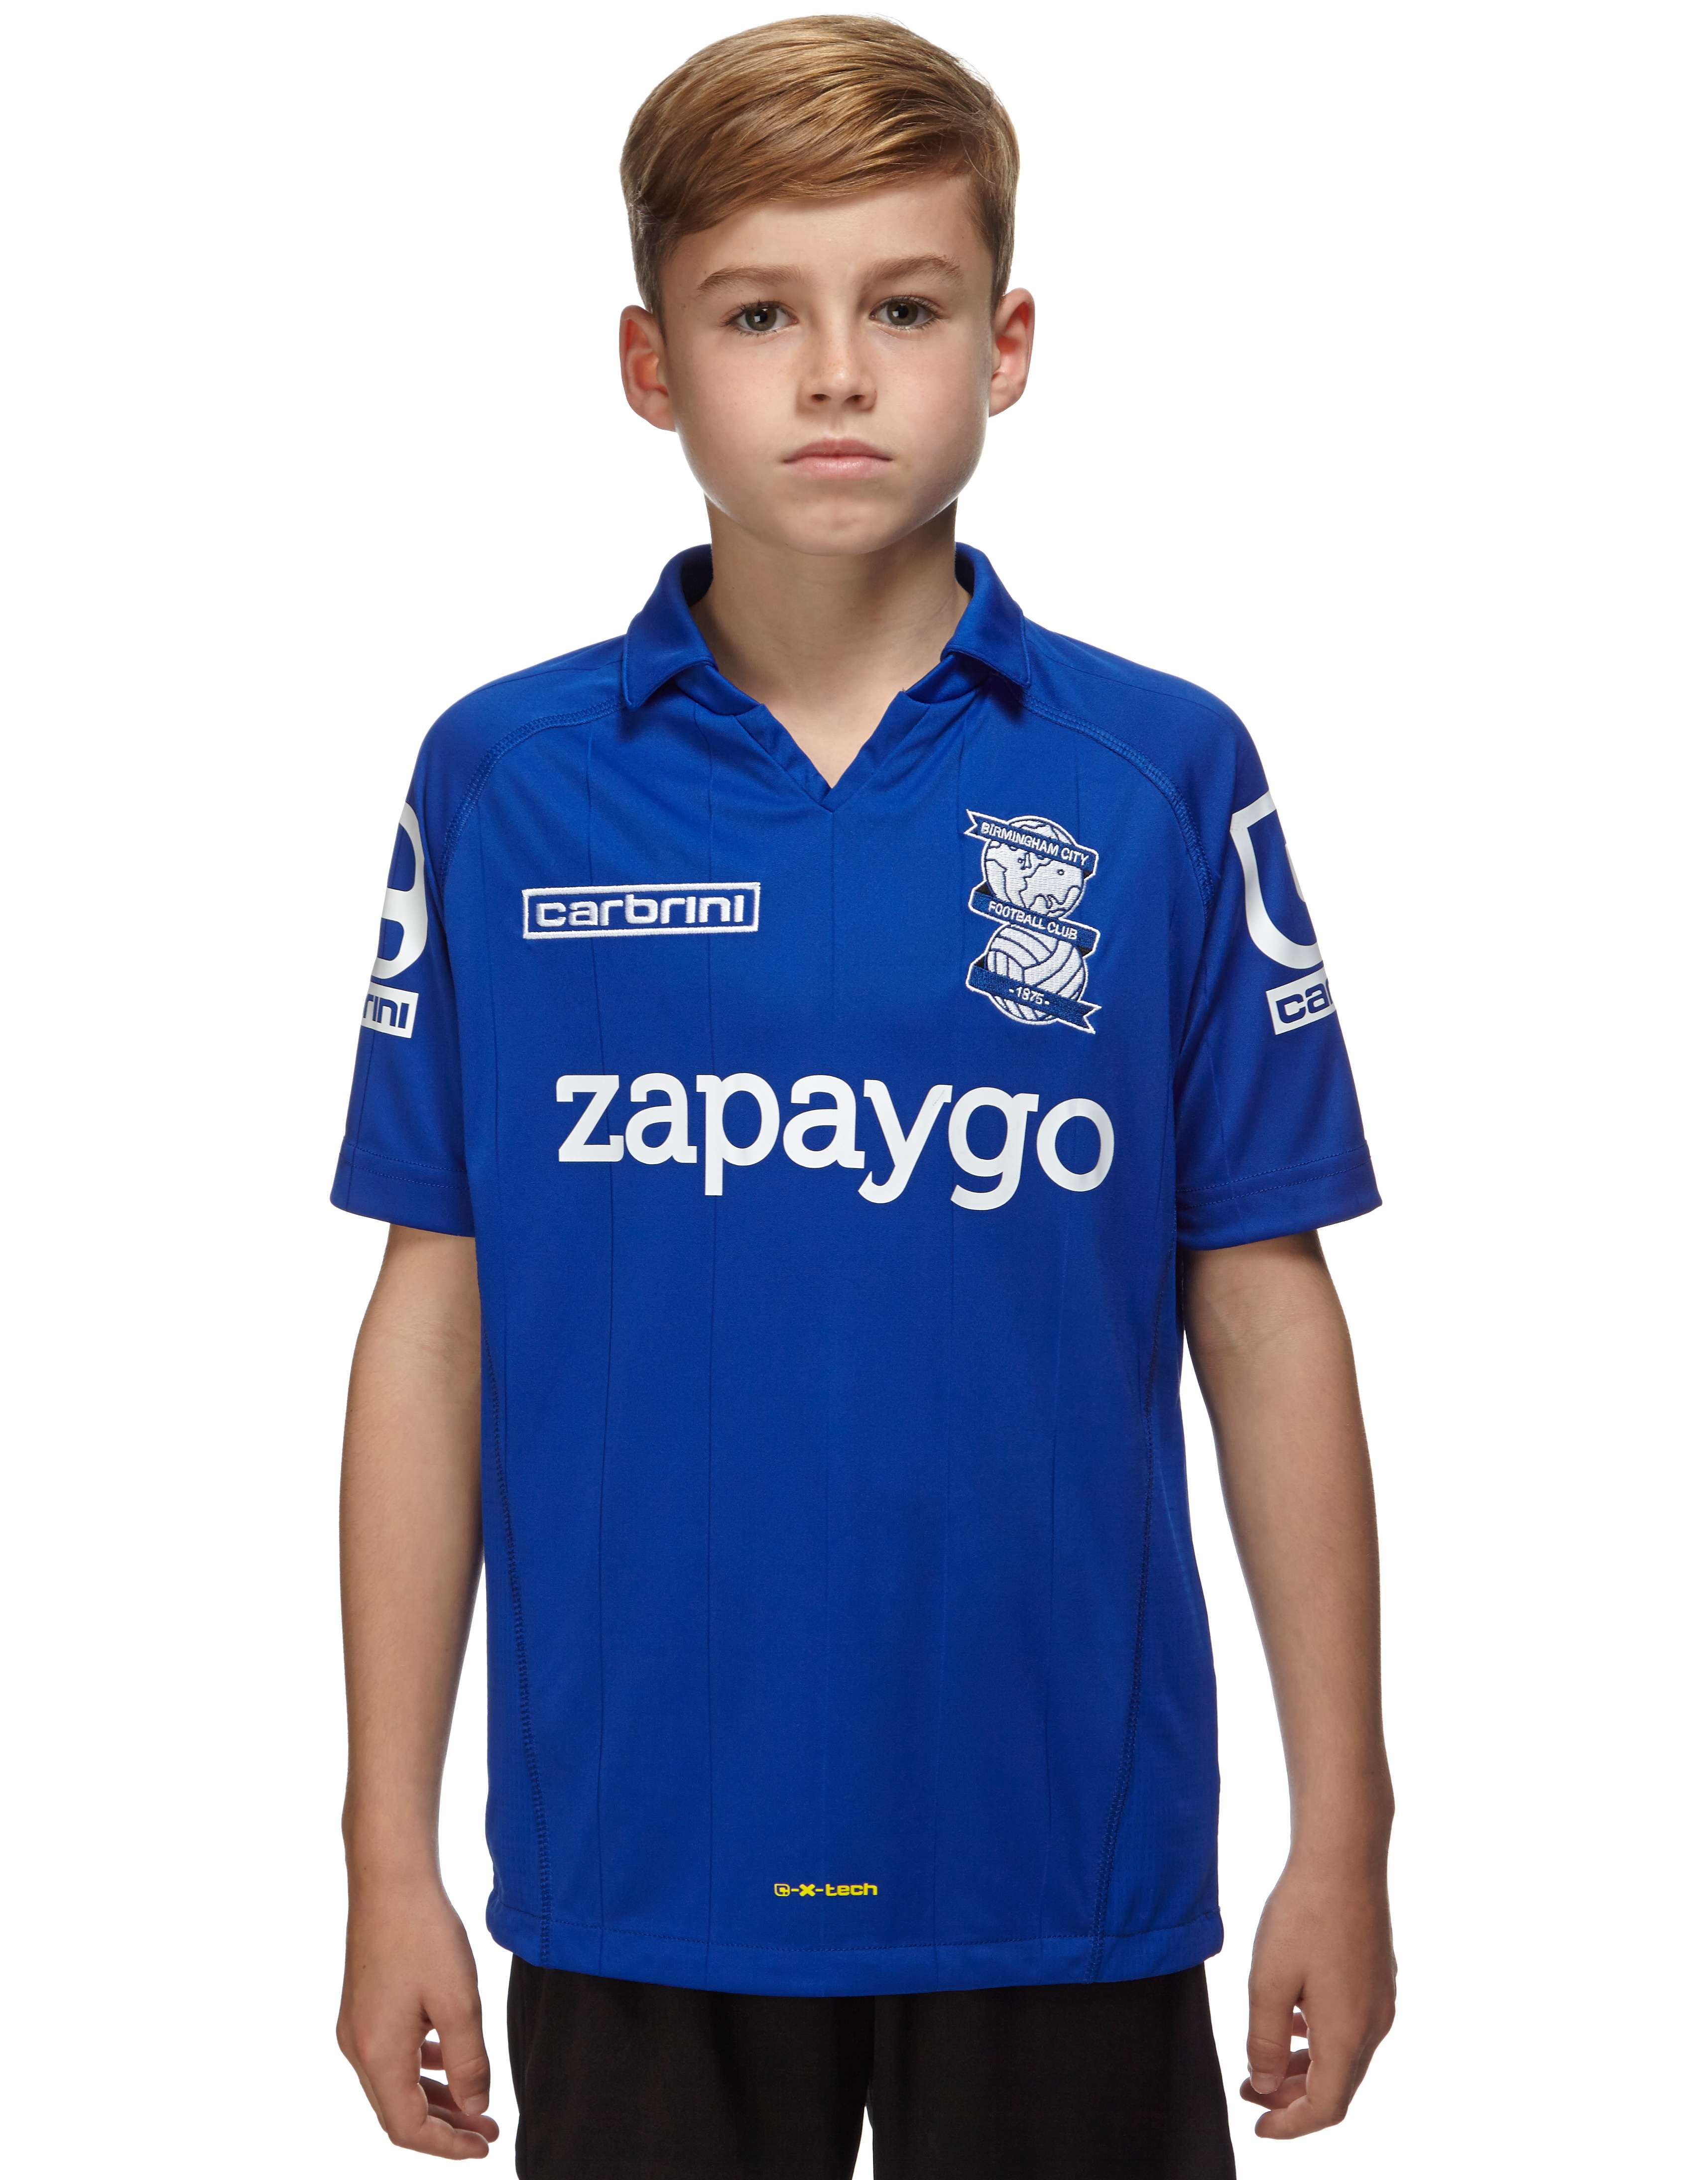 Carbrini Birmingham City FC 2014 Junior Home Shirt